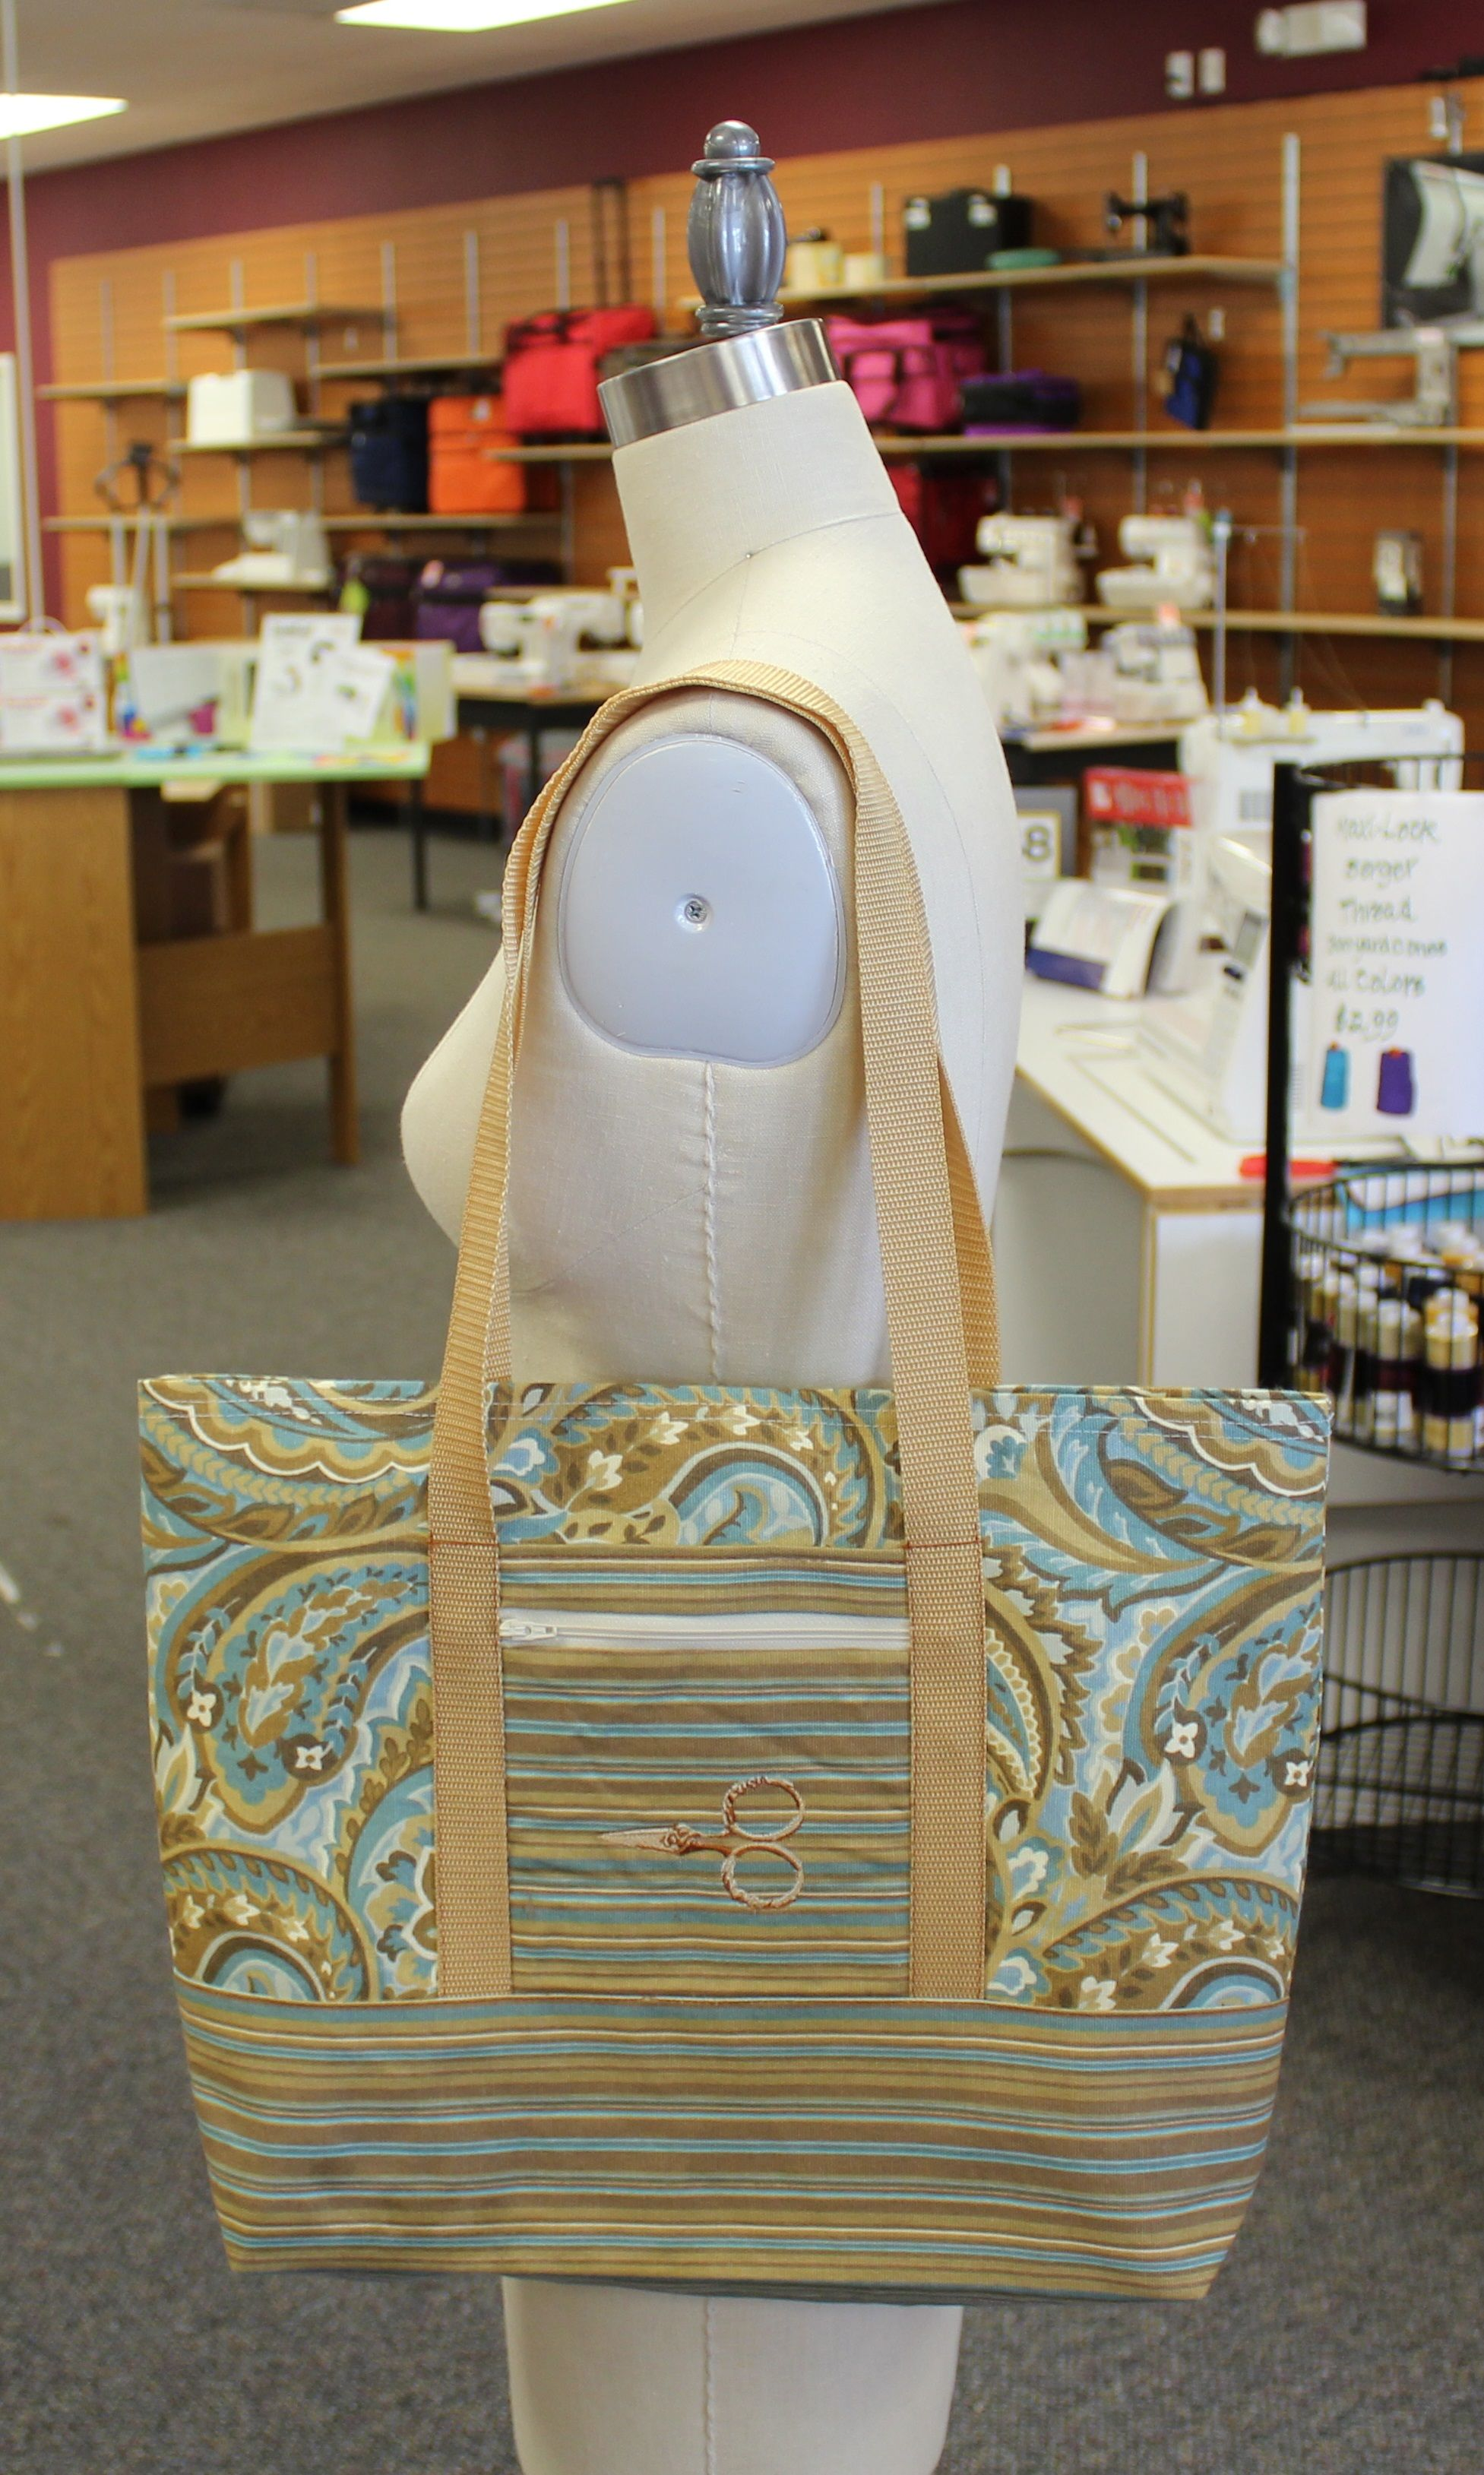 Janome memory craft 12000 - Tote Bag Stitched On Janome Hd3000 Pocket Embroidered On Janome Horizon Memory Craft